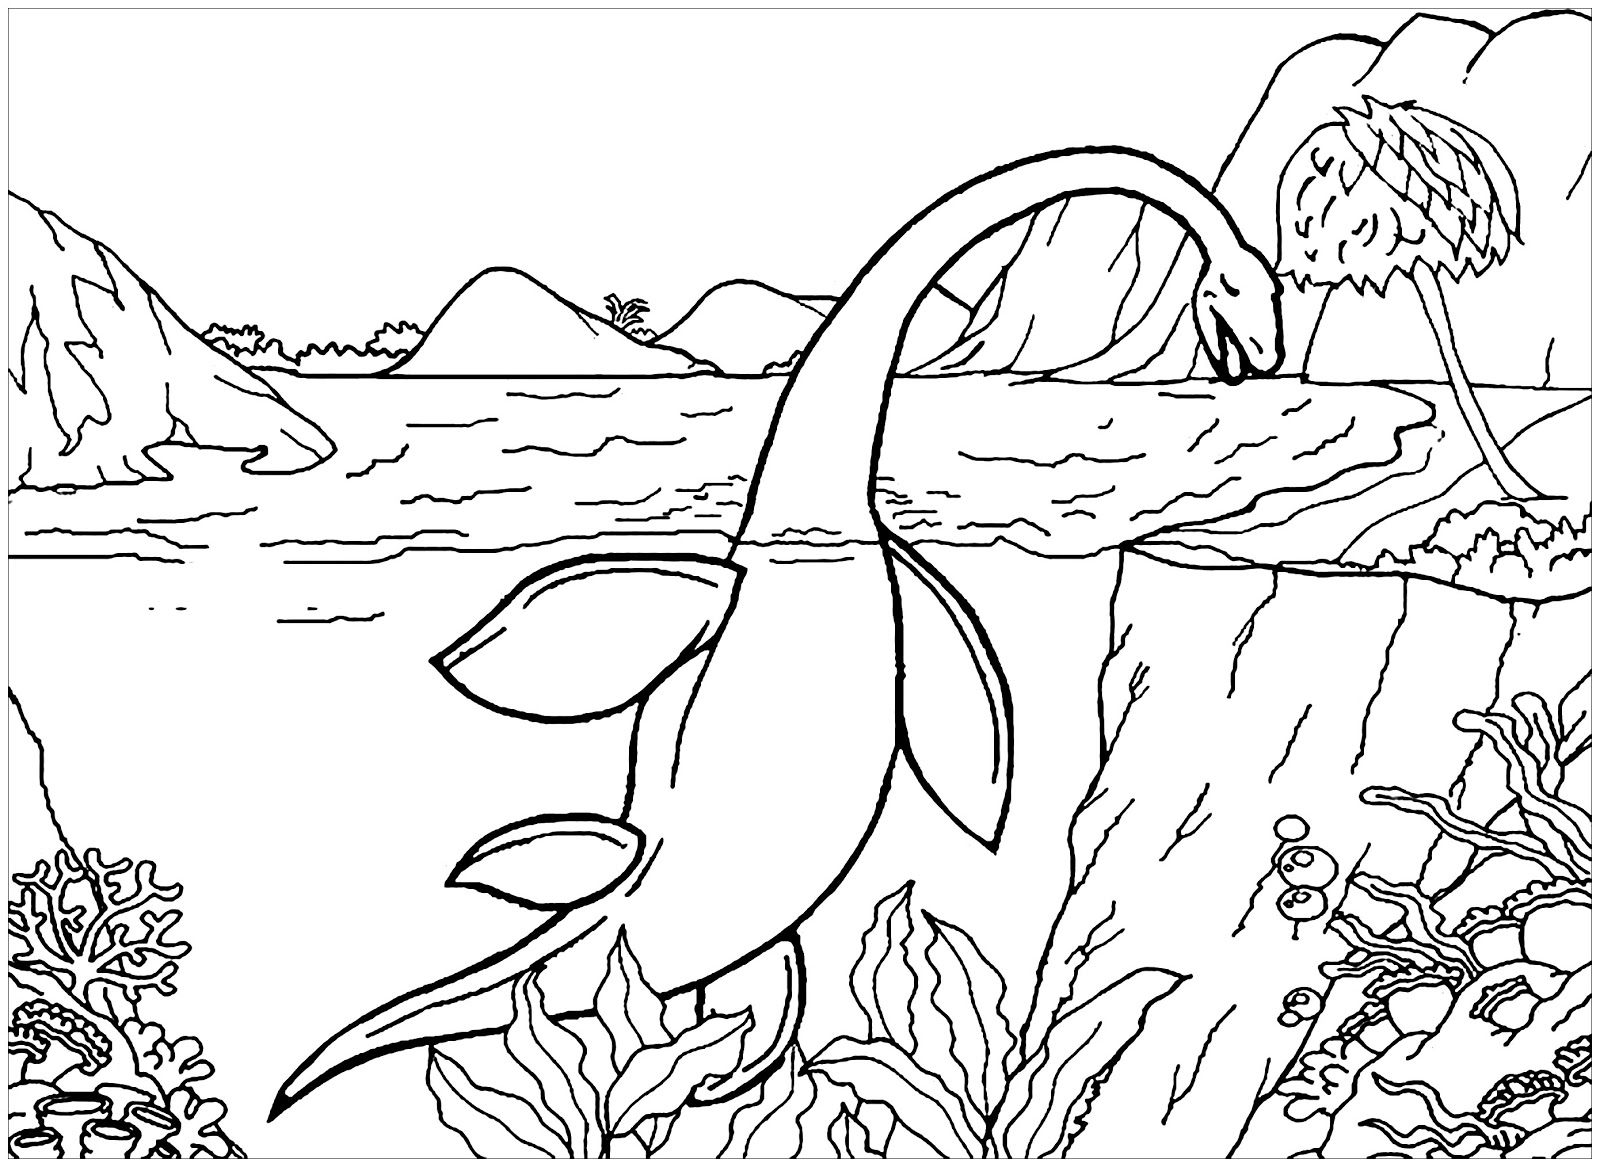 Dinosaurs coloring pages 48